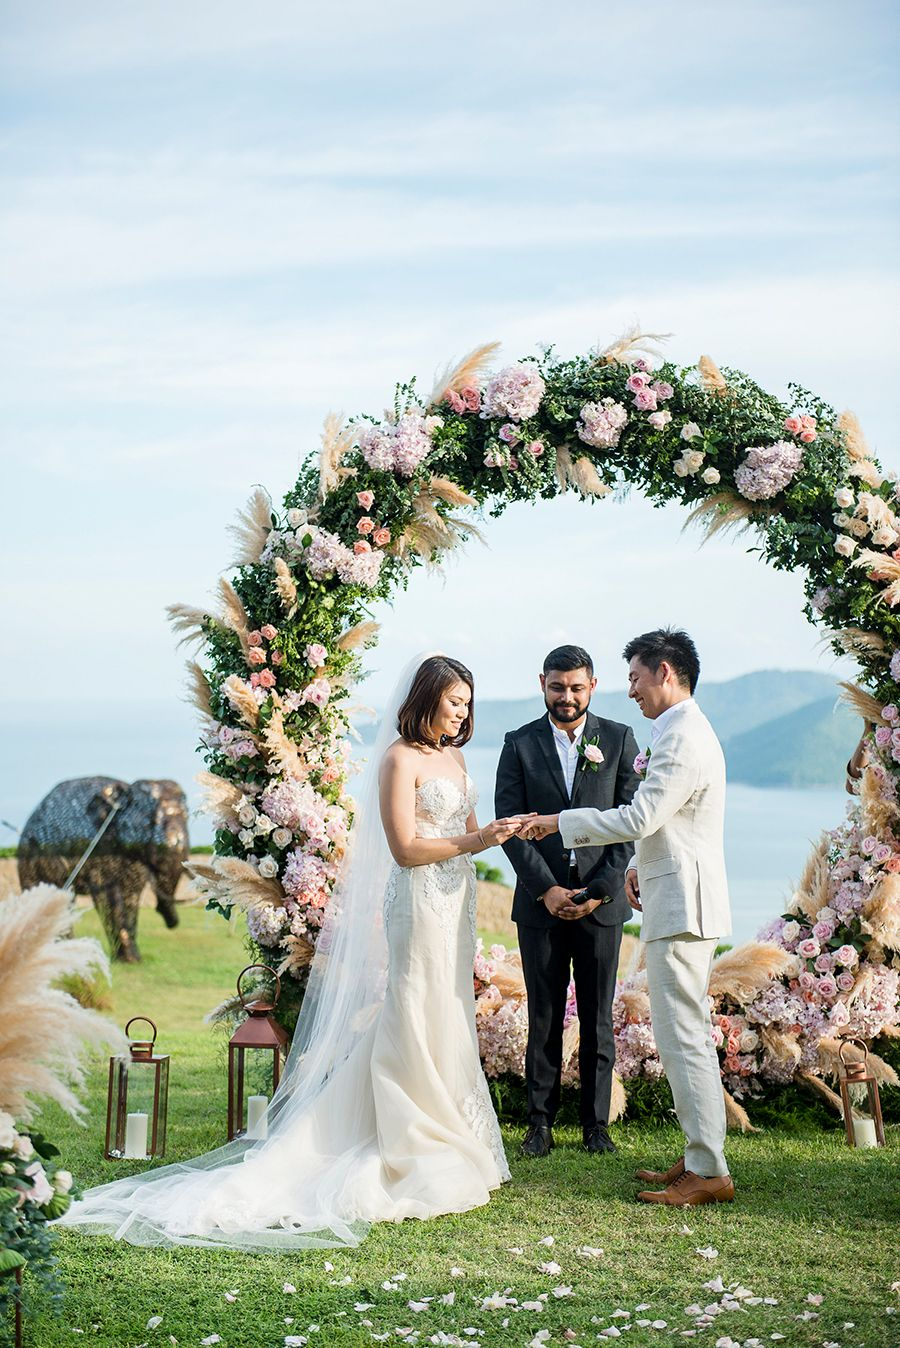 Circular Floral Arches: Why Your Wedding Ceremony Needs This New Trend |  Wedding ceremony arch, Wedding ceremony, Wedding arch